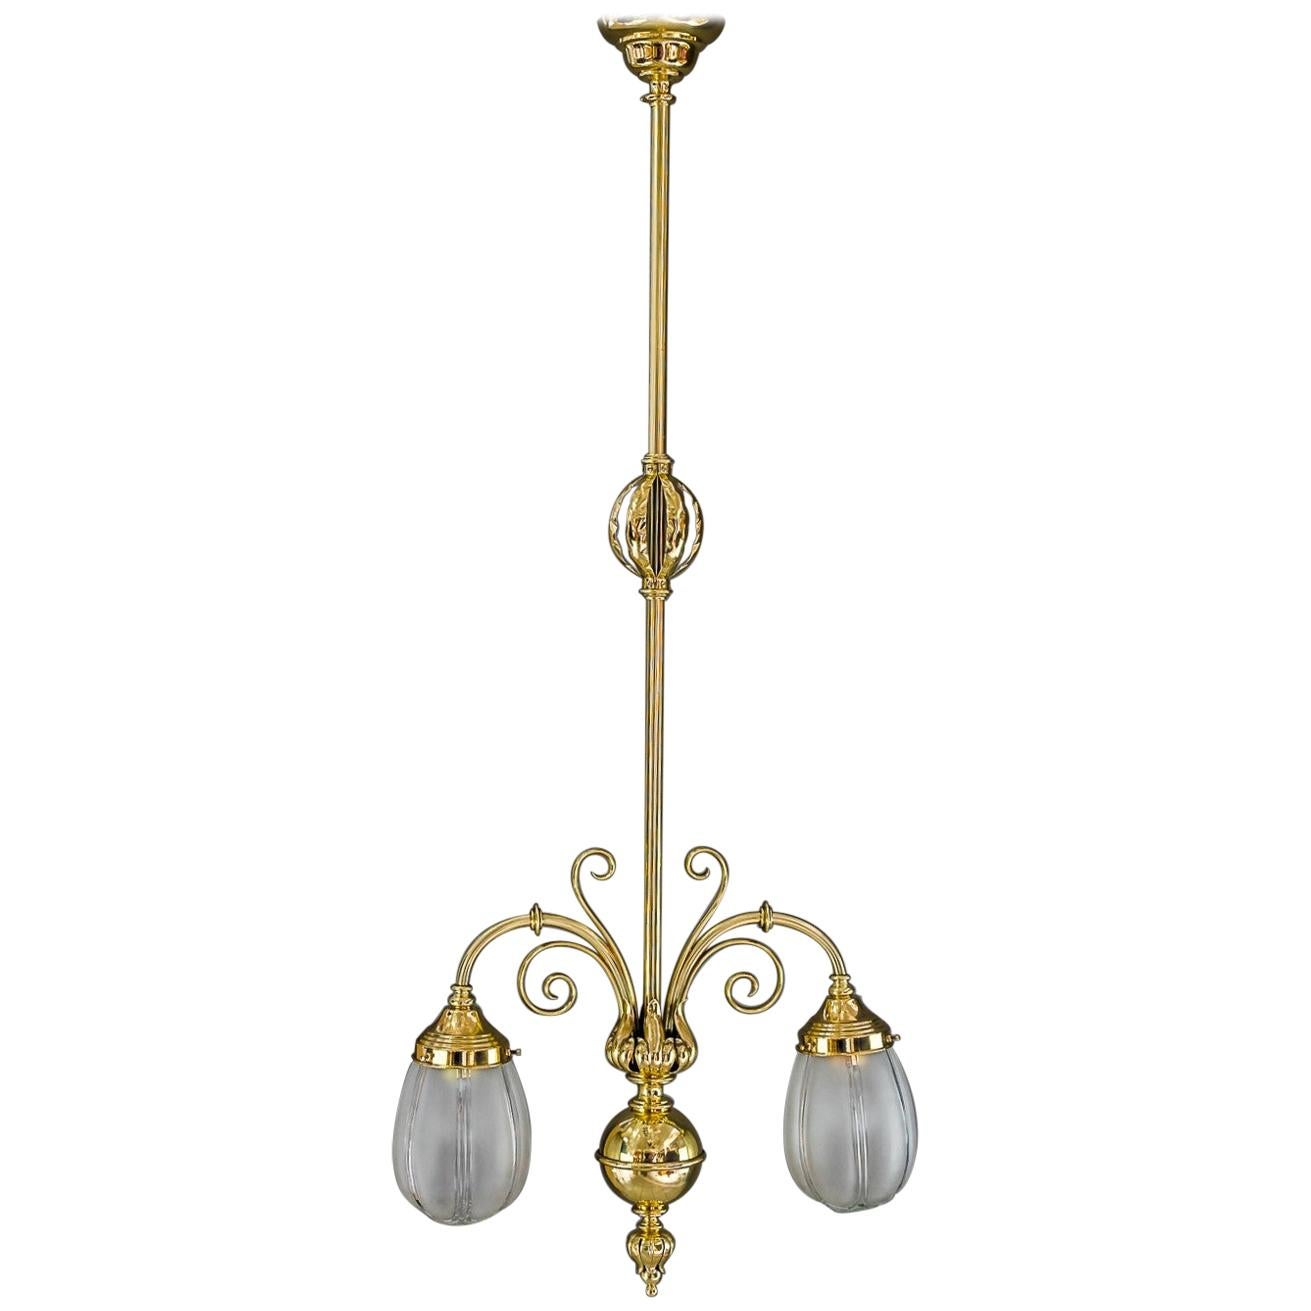 Art Deco Pendant with Original Glass Shades, Vienna, around 1920s